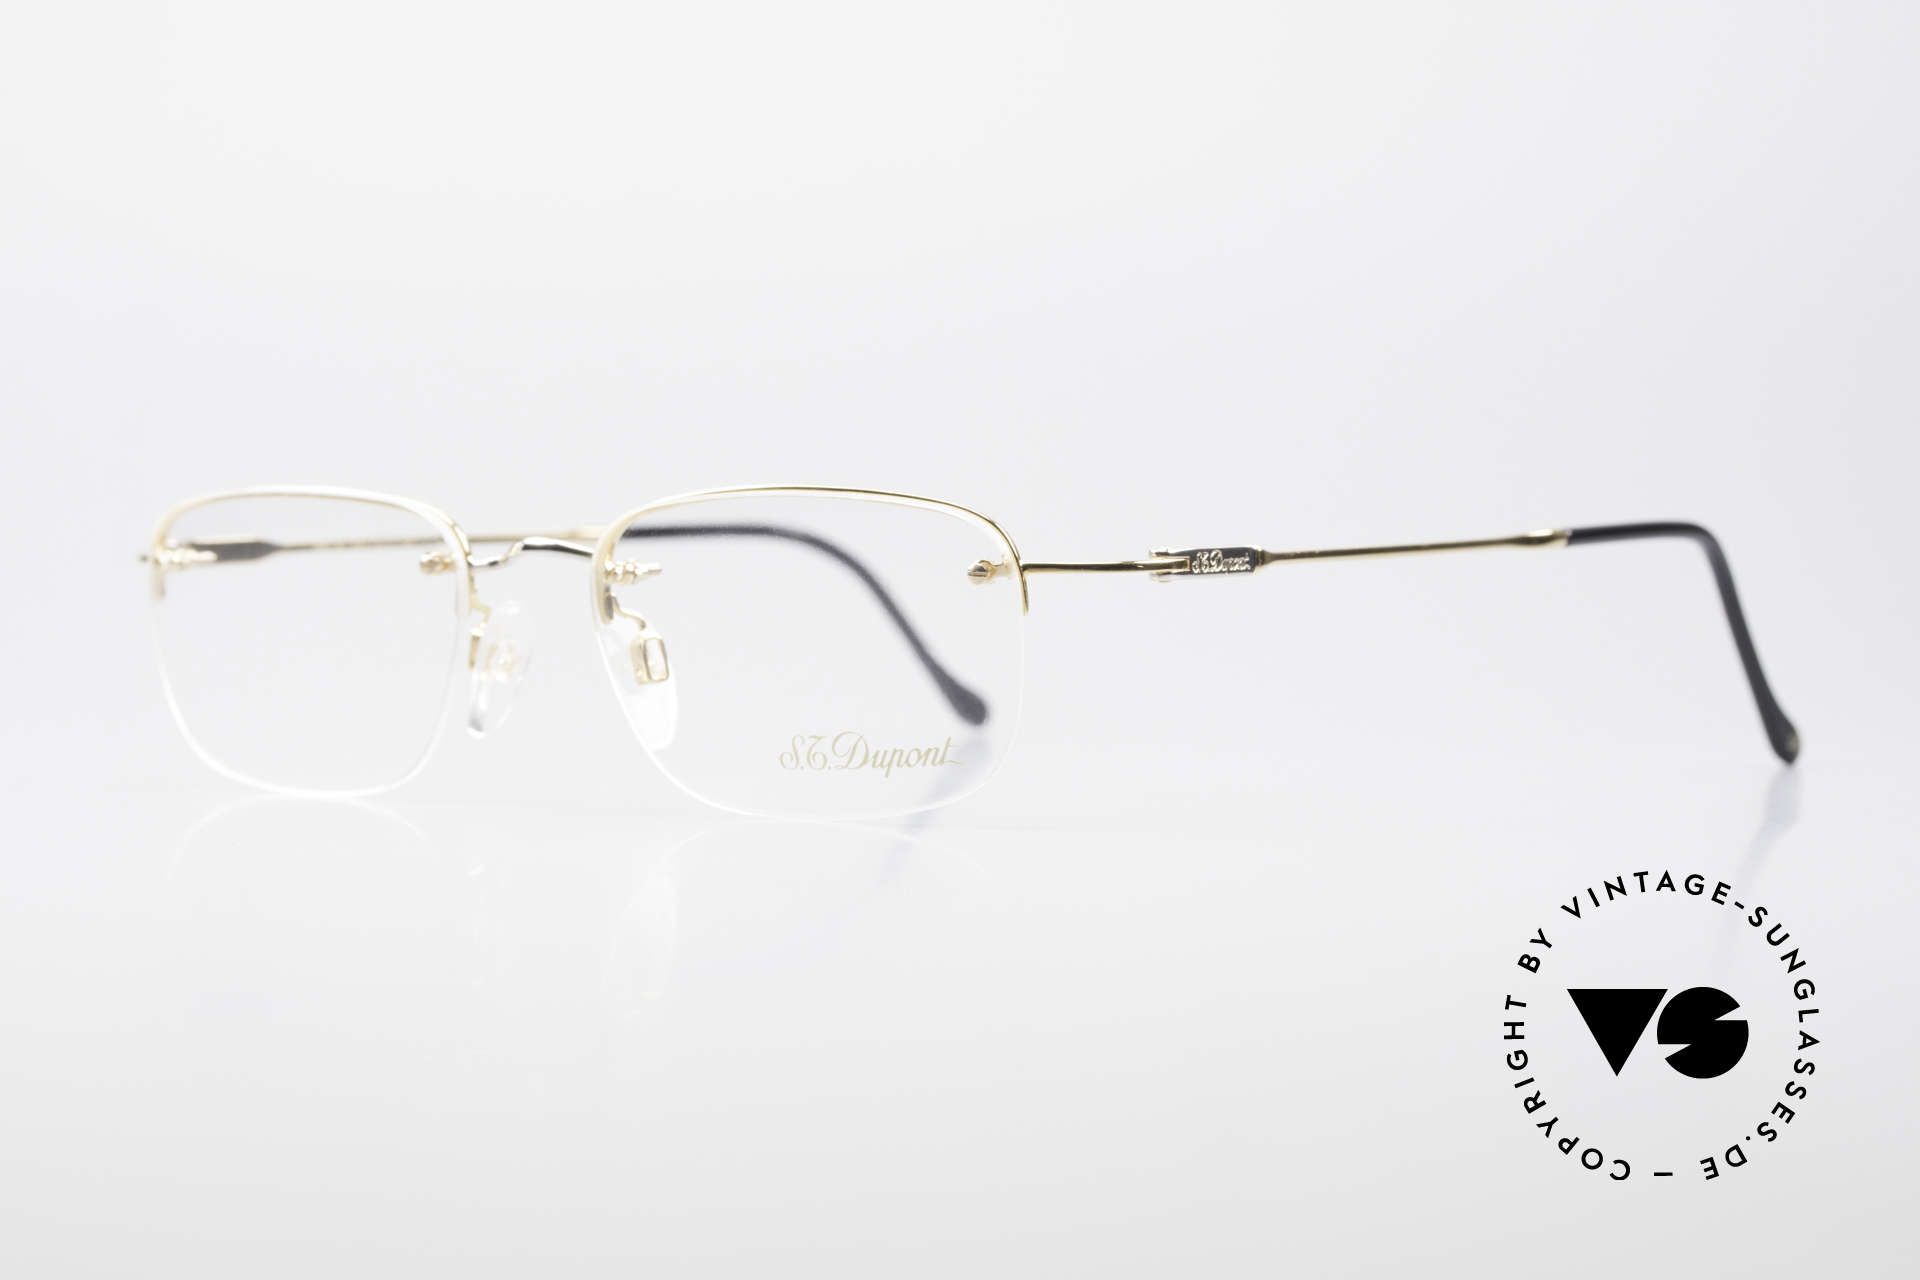 S.T. Dupont D523 Rimless Glasses Avance 2000's, very noble and 1st class wearing comfort; in size 49/17, Made for Men and Women